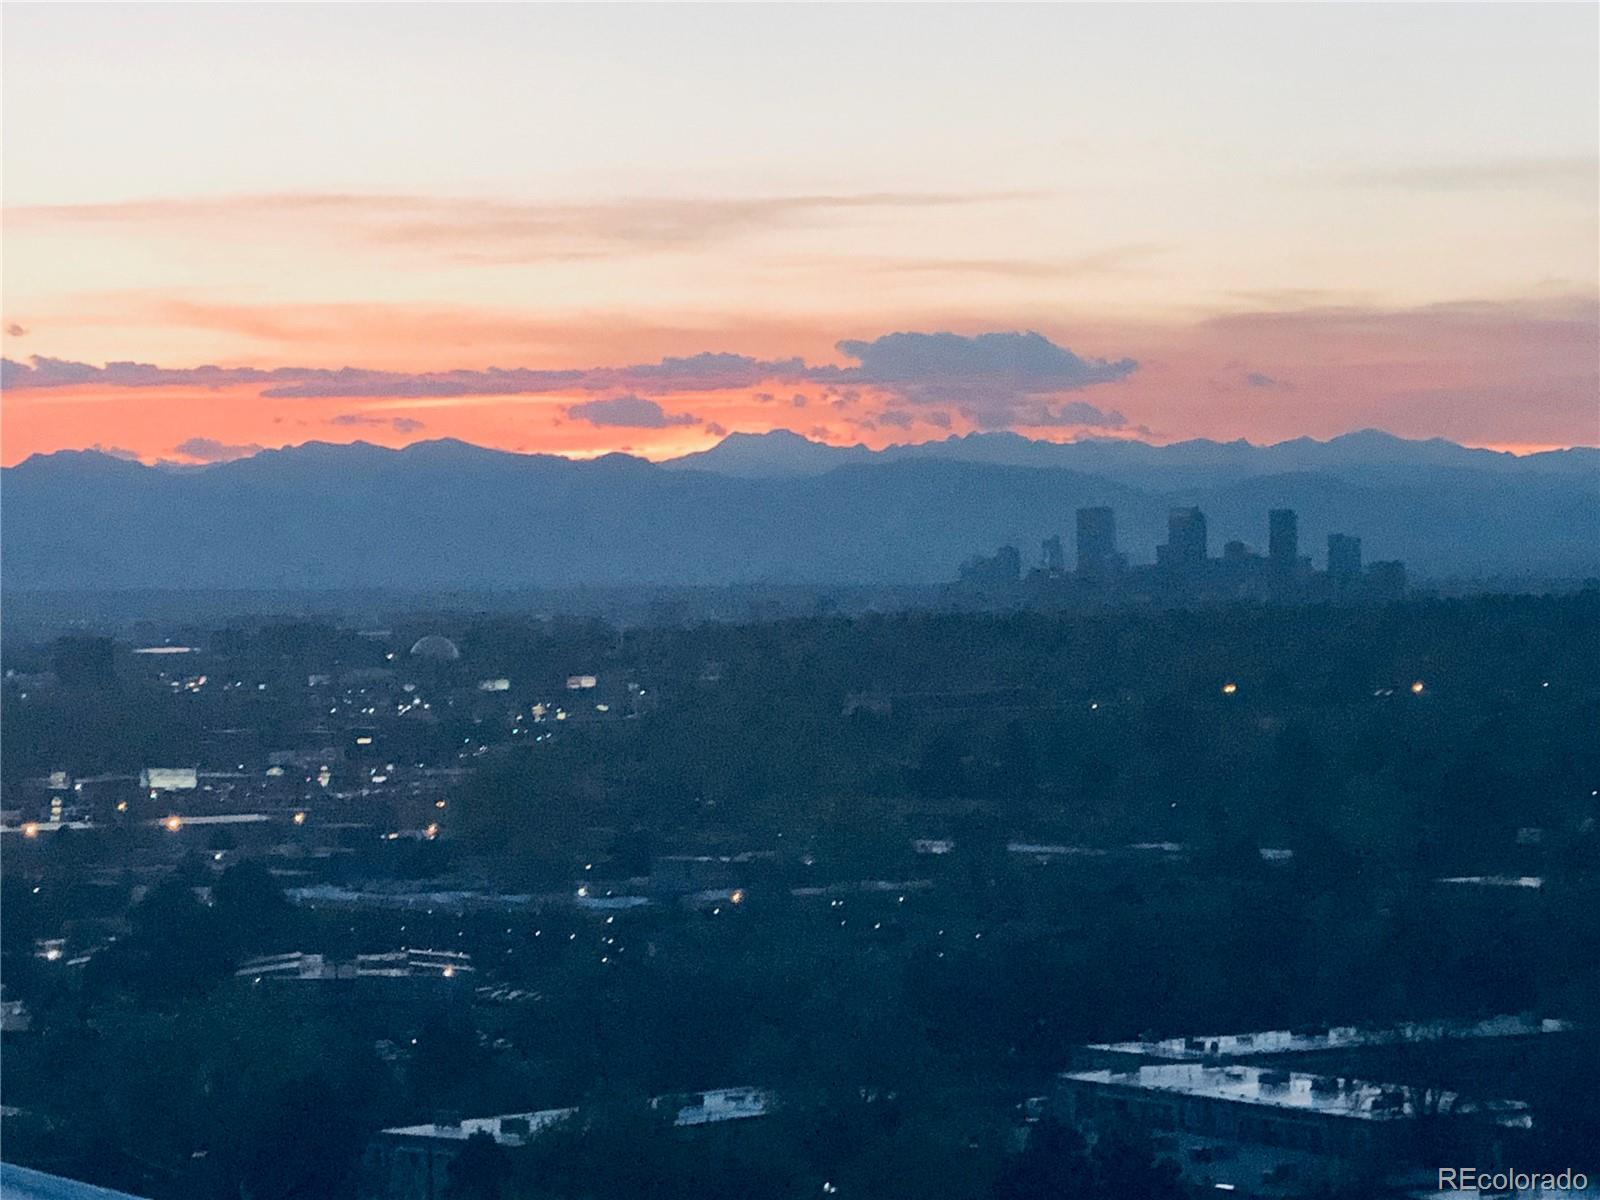 BEST VIEWS IN DENVER! This 12th floor condo in sought-after Candlewyck is light, clean and bright with both STUNNING  MOUNTAIN AND CITY VIEWS from EVERY ROOM! Floor to ceiling glass enclosed Lanai offers beautiful flex space. Wet-bar in living room. GREAT SPACE TO ENTERTAIN! Kitchen features ample counter space and cupboards and stainless steel appliances including indoor grill. Large closets in bedroom and hall offer spacious storage.  Washer/dryer in unit.  TWO dedicated storage closets, THREE PARKING SPACES and ample visitor parking. AMENITIES GALORE! Indoor pool, hot tub, steam room and sauna, weight room, billiards table, tennis courts, library.  Enjoy the outdoors with patios, gardens, fire pit, gazebos, grills and spacious grounds with walking paths and peaceful water features. Only steps away from the Highline Canal path.  Walking distance to grocery stores, restaurants. One mile from major shopping and restaurants! GORGEOUS VIEWS! AMENITIES! CONVENIENT LIFESTYLE!